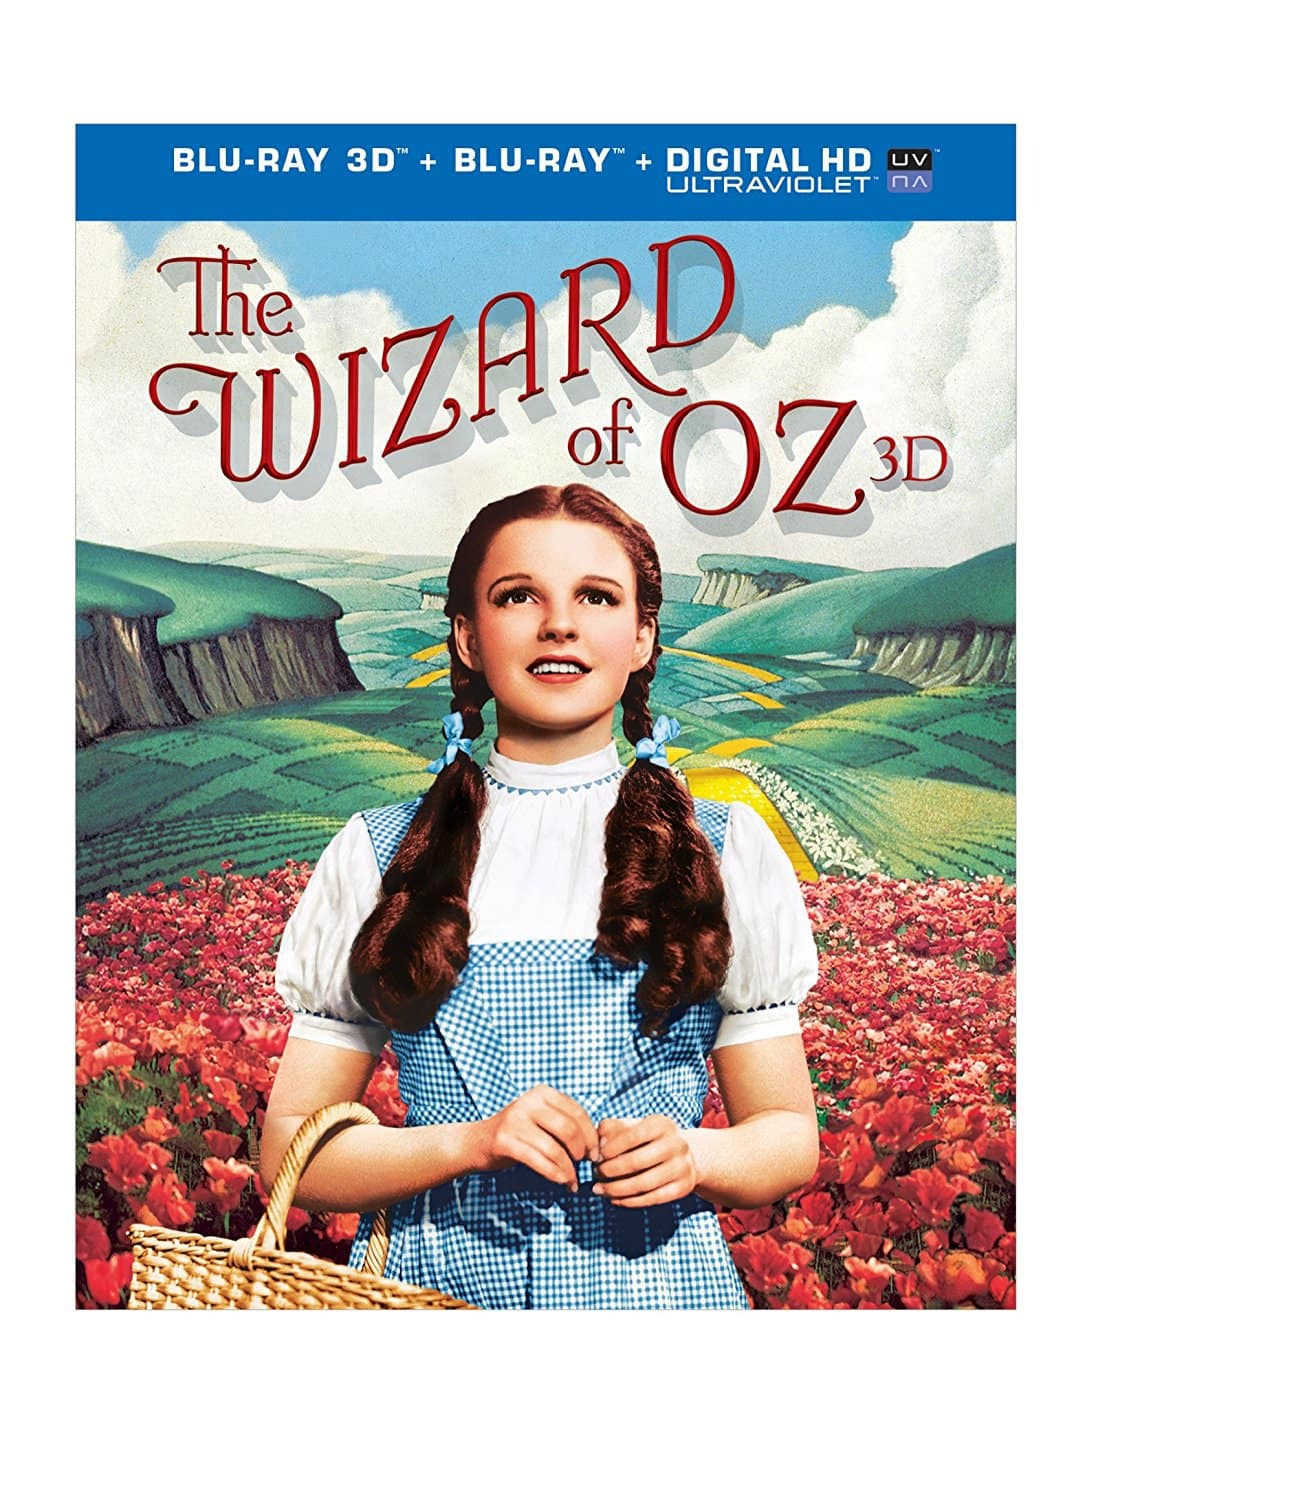 The Wizard of Oz 75th Anniversary Edition 3D + Blu-ray + Digital + Ultraviolet - $13.50 on Amazon